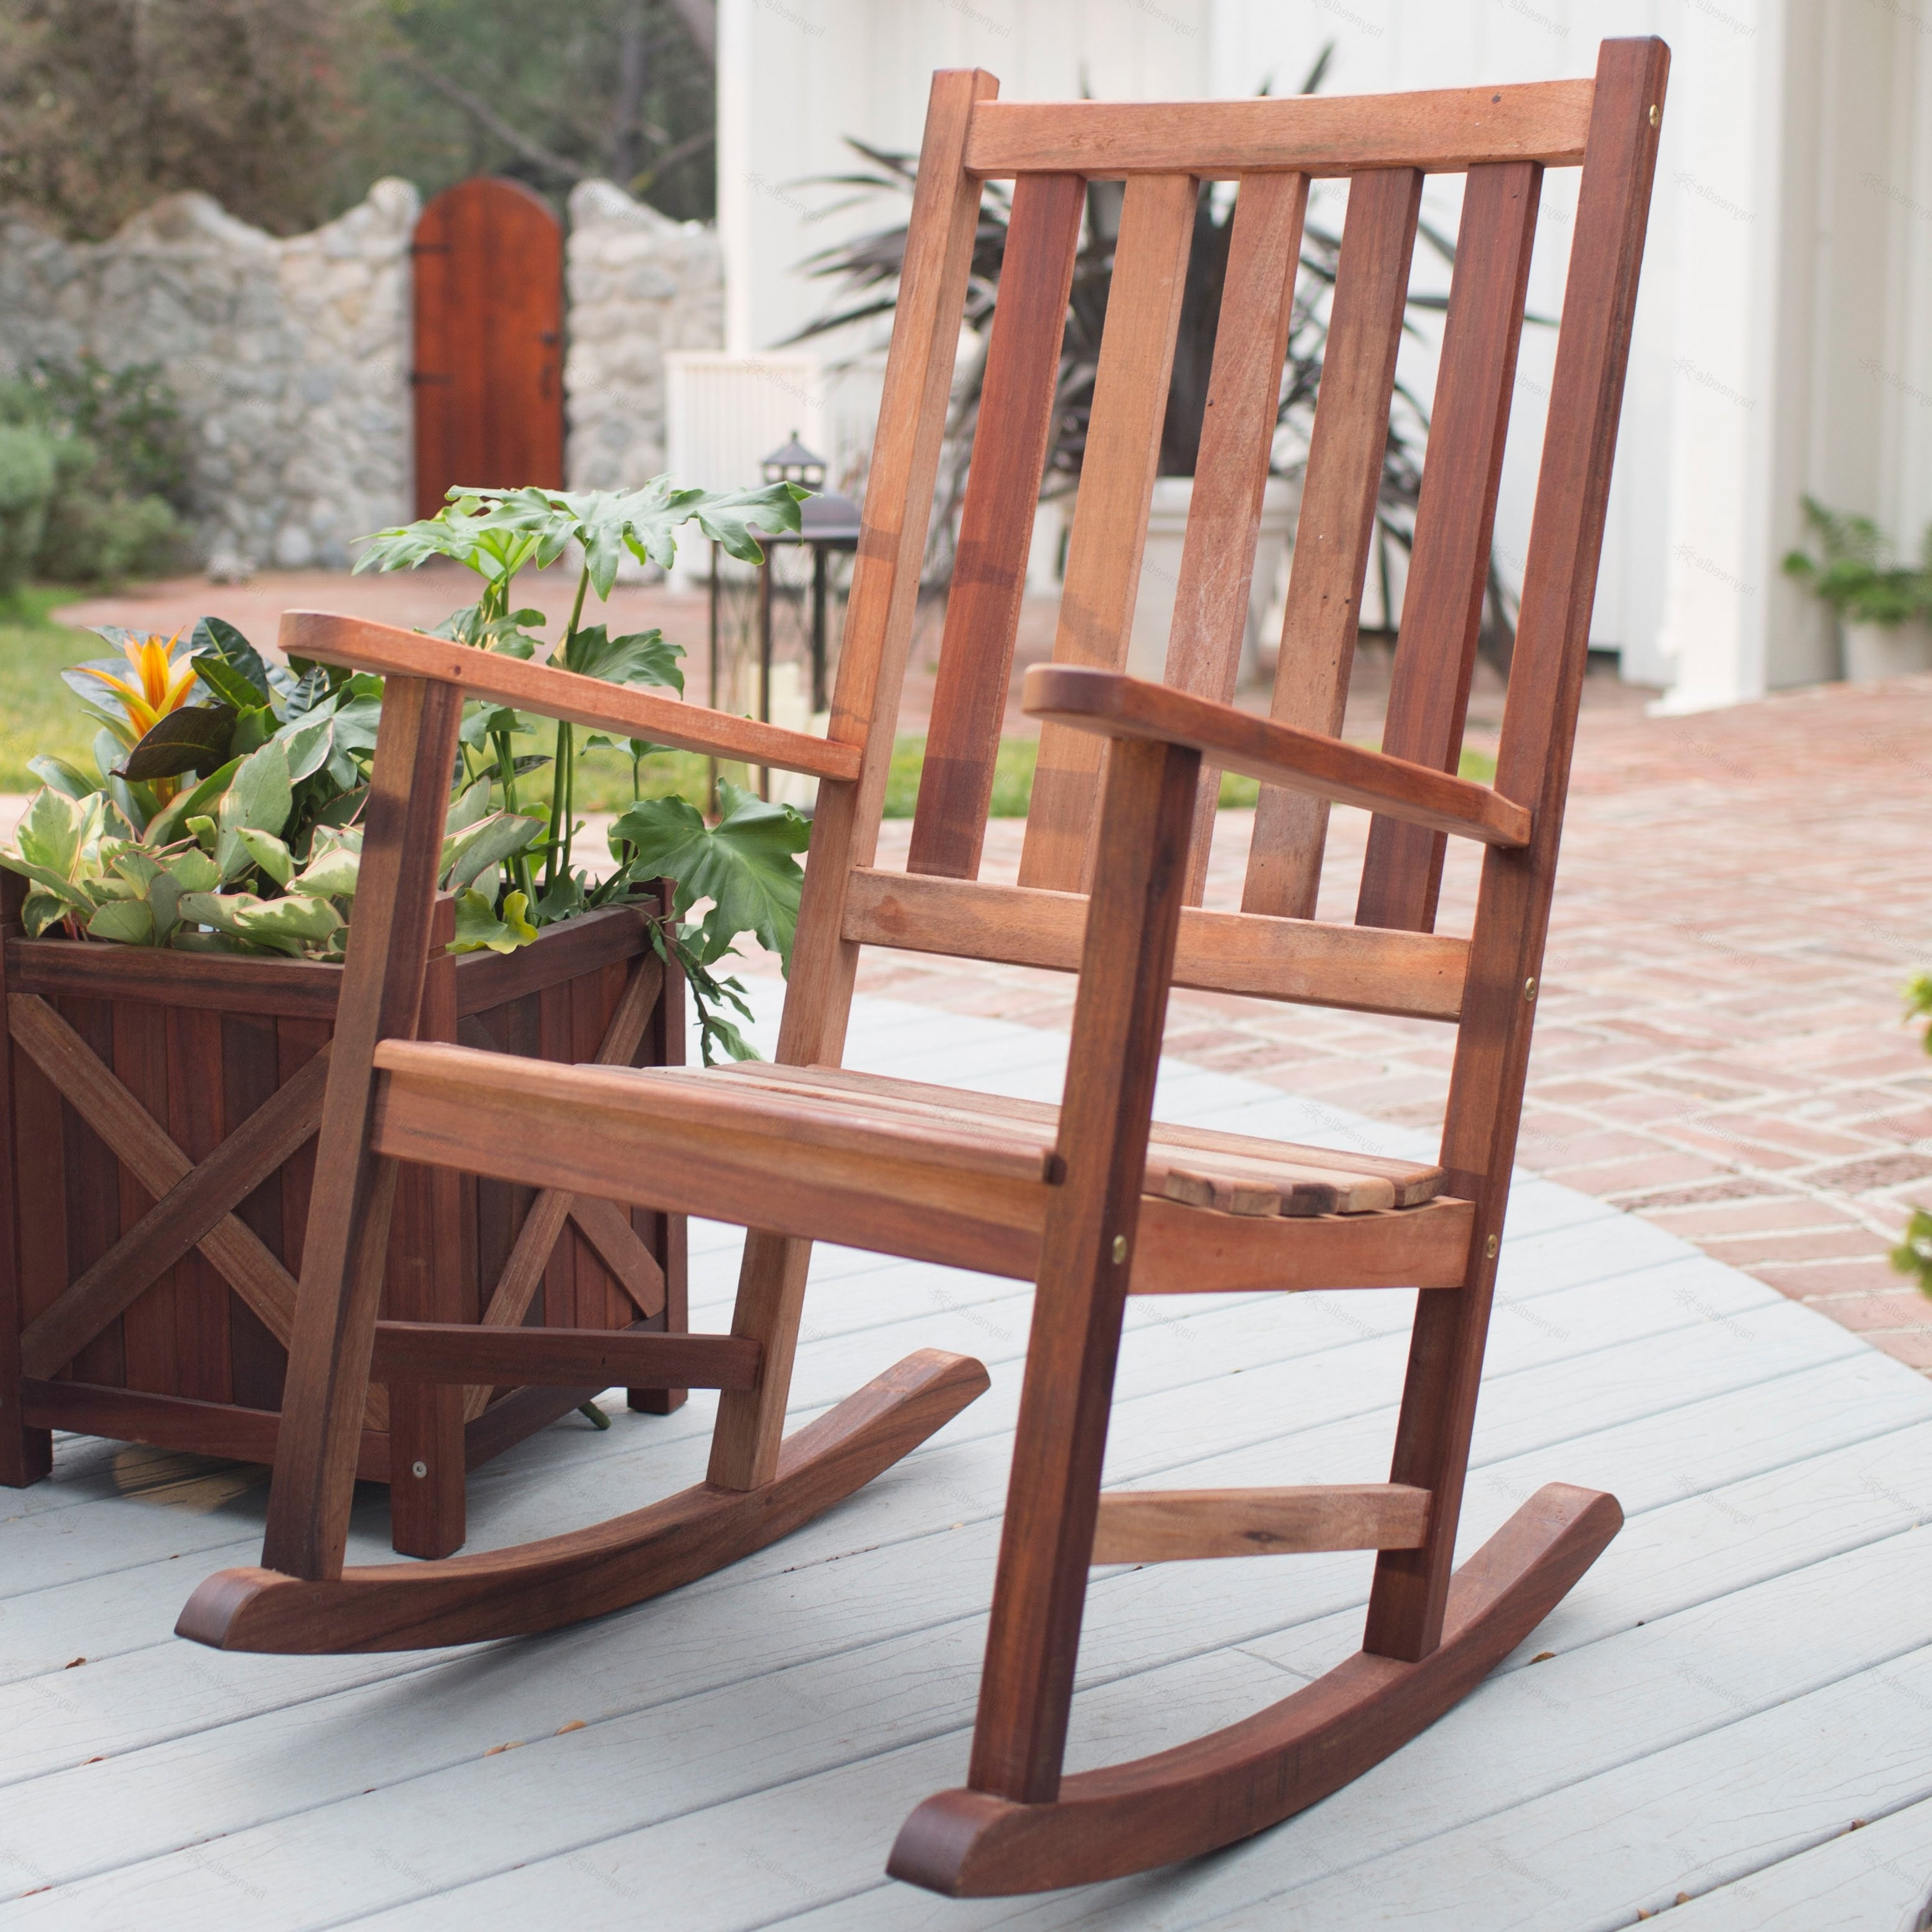 Current Enjoy A Comfortable Swing With Rocking Chair – Bellissimainteriors Within Rocking Chairs For Porch (View 20 of 20)